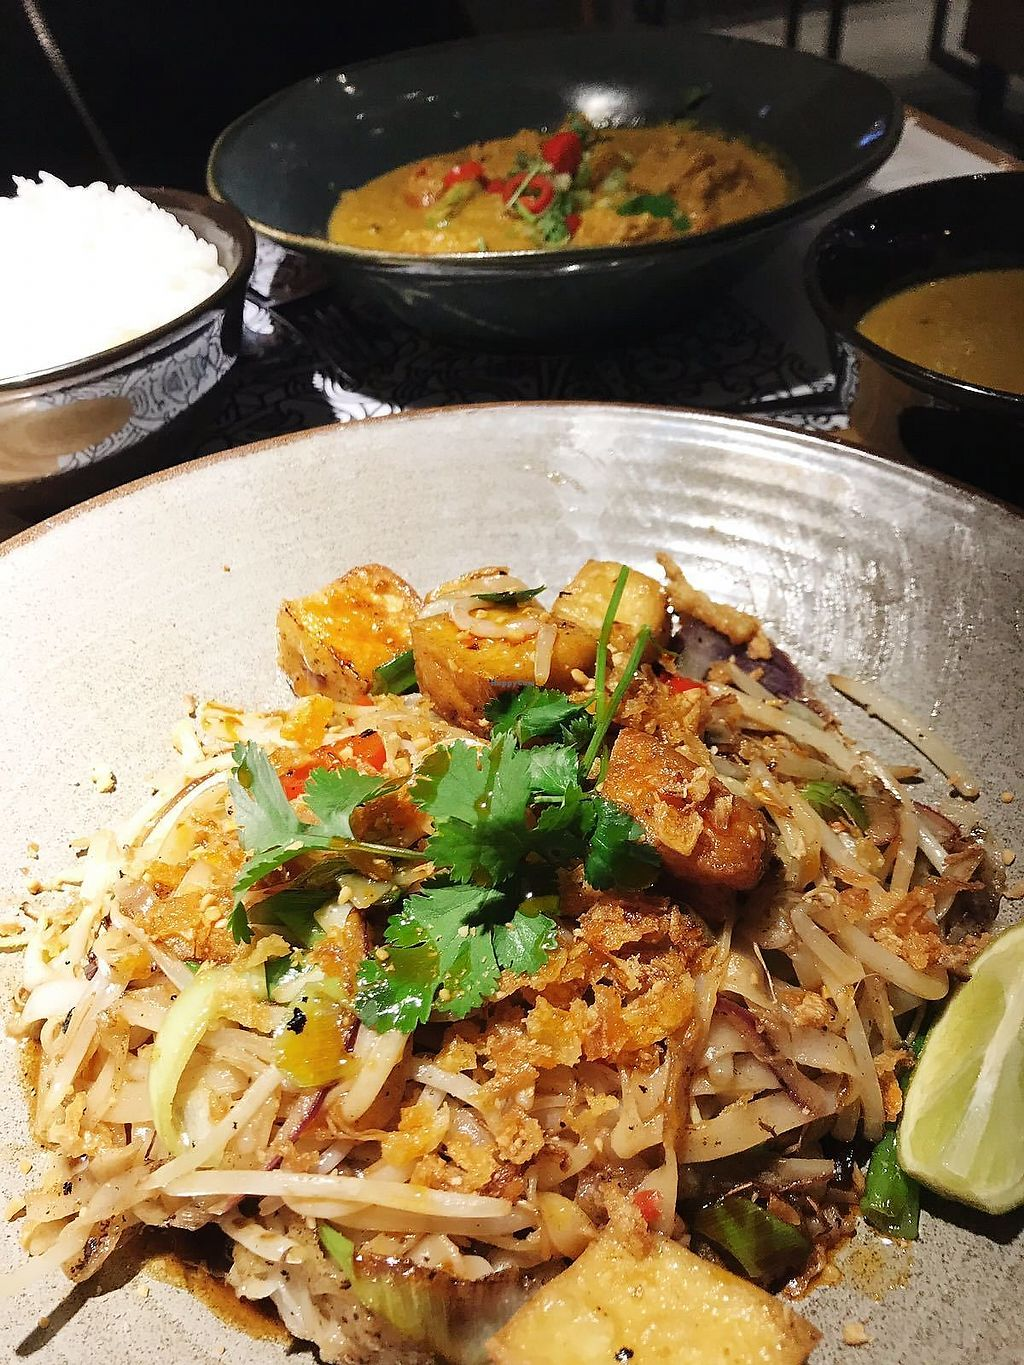 "Photo of Wagamama  by <a href=""/members/profile/TARAMCDONALD"">TARAMCDONALD</a> <br/>Pad thai with fried tofu <br/> January 17, 2018  - <a href='/contact/abuse/image/94890/347516'>Report</a>"